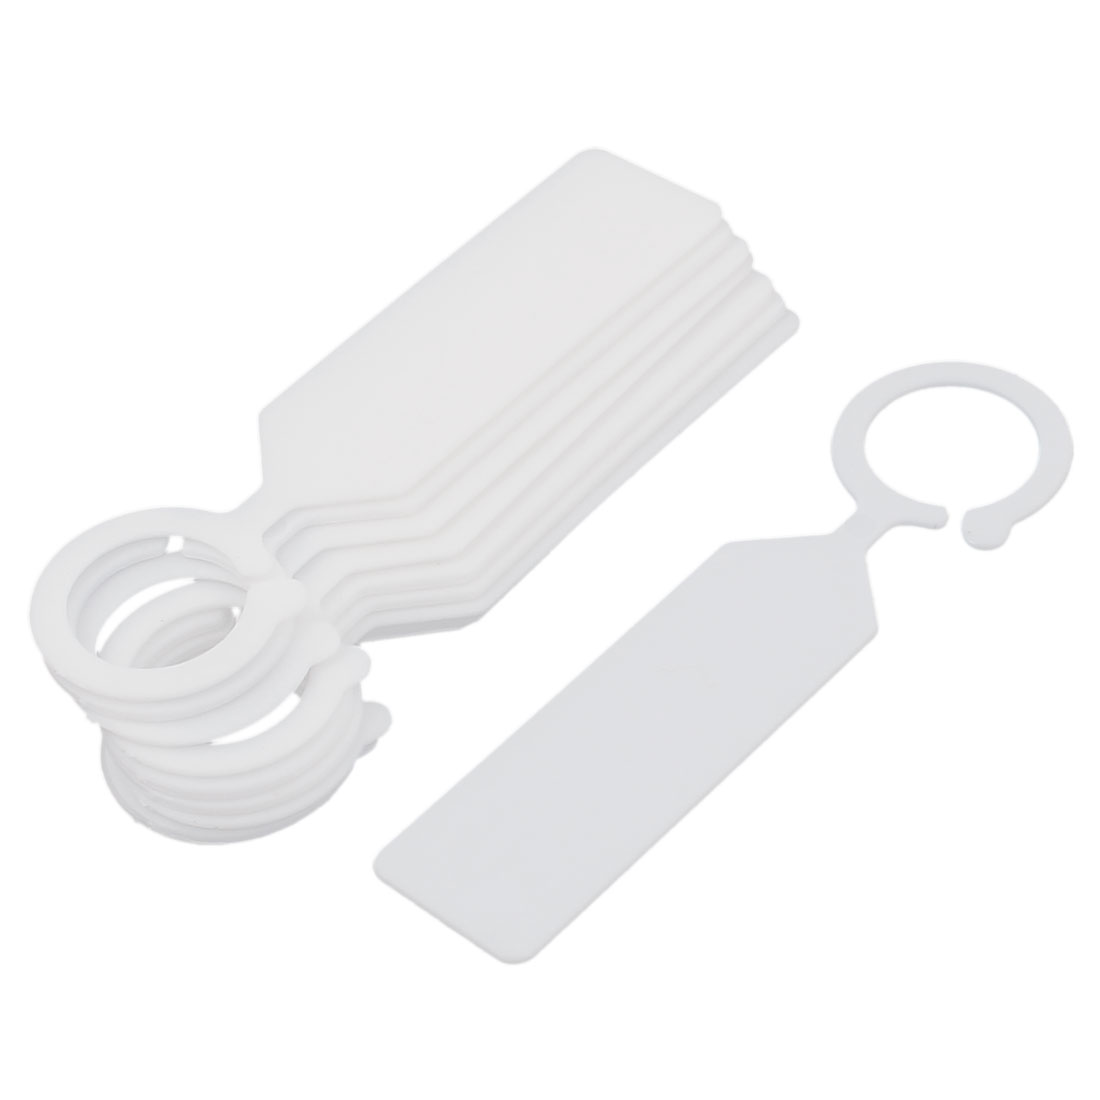 Plastic Hook Nursery Garden Plant Seed Hanging Tag Label Marker White 10Pcs